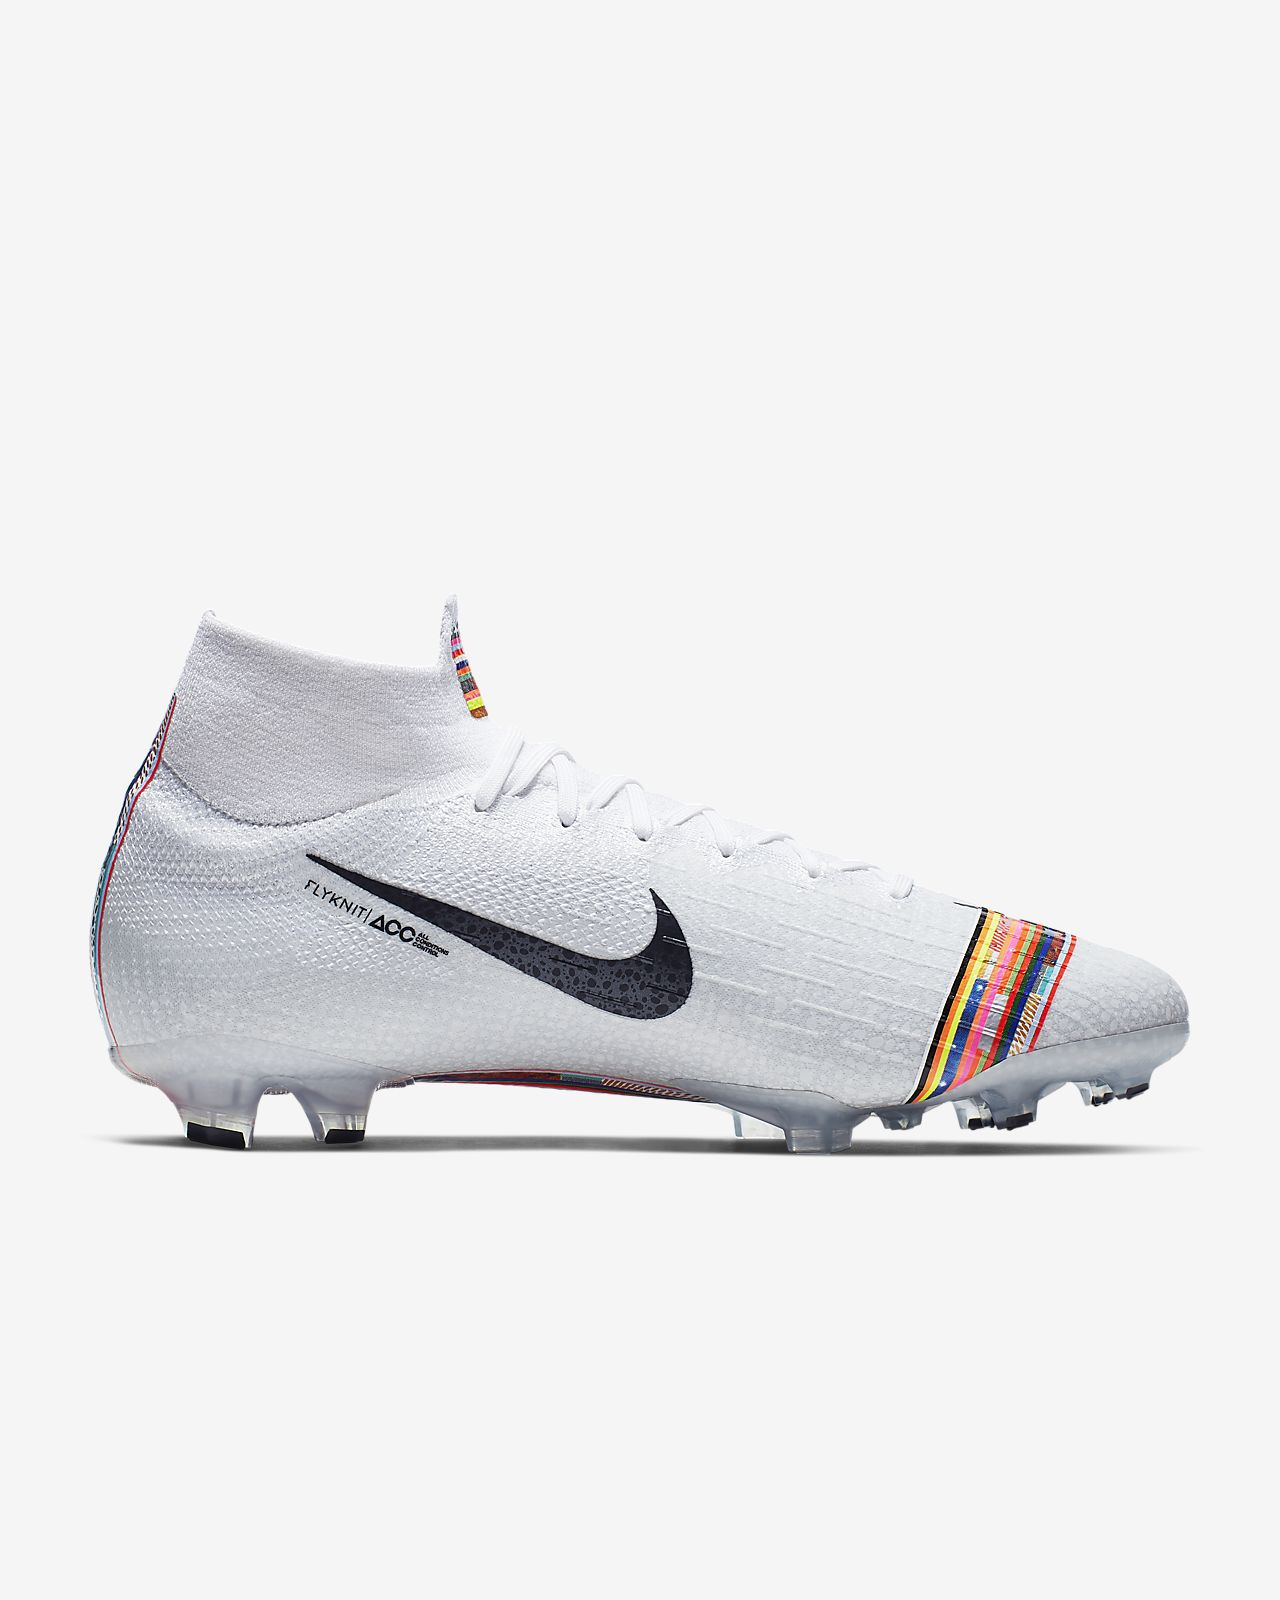 more photos 0400c c153e ... Nike Mercurial Superfly 360 Elite LVL UP SE FG Firm-Ground Football Boot